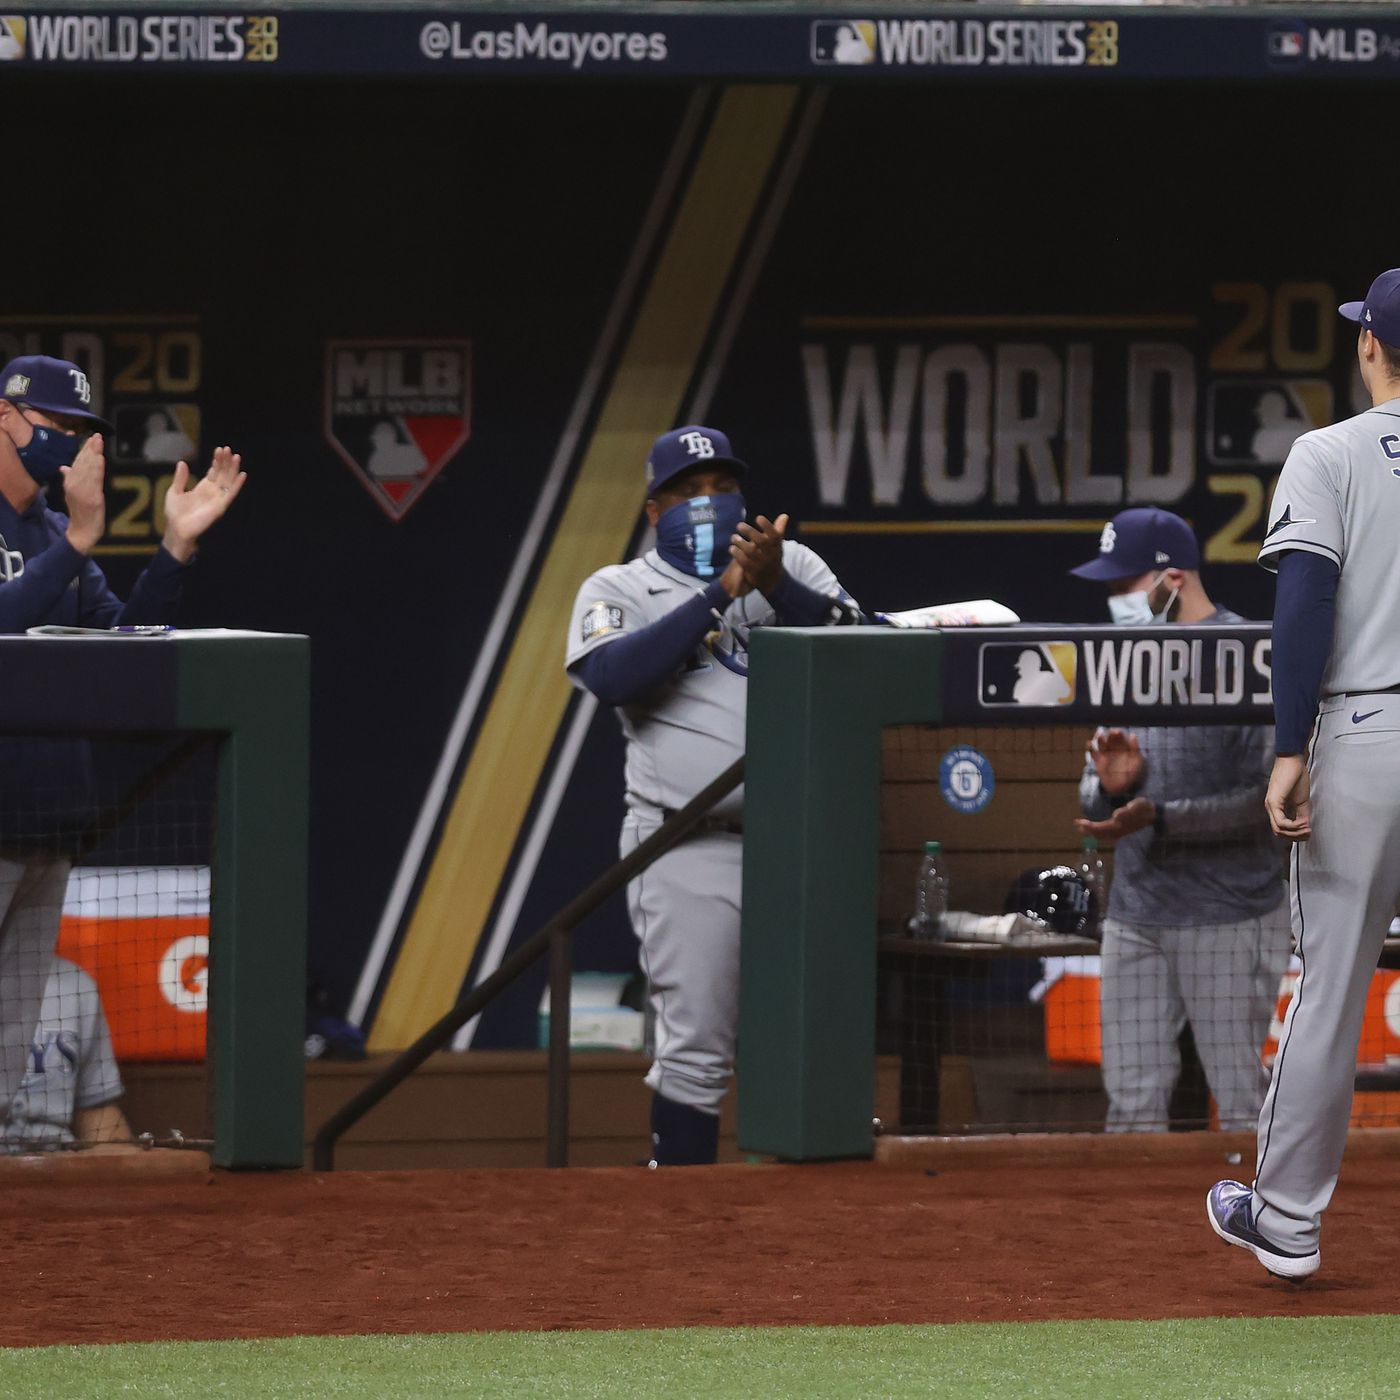 world series game 6 diary tampa bay rays fall short to los angeles dodgers draysbay series game 6 diary tampa bay rays